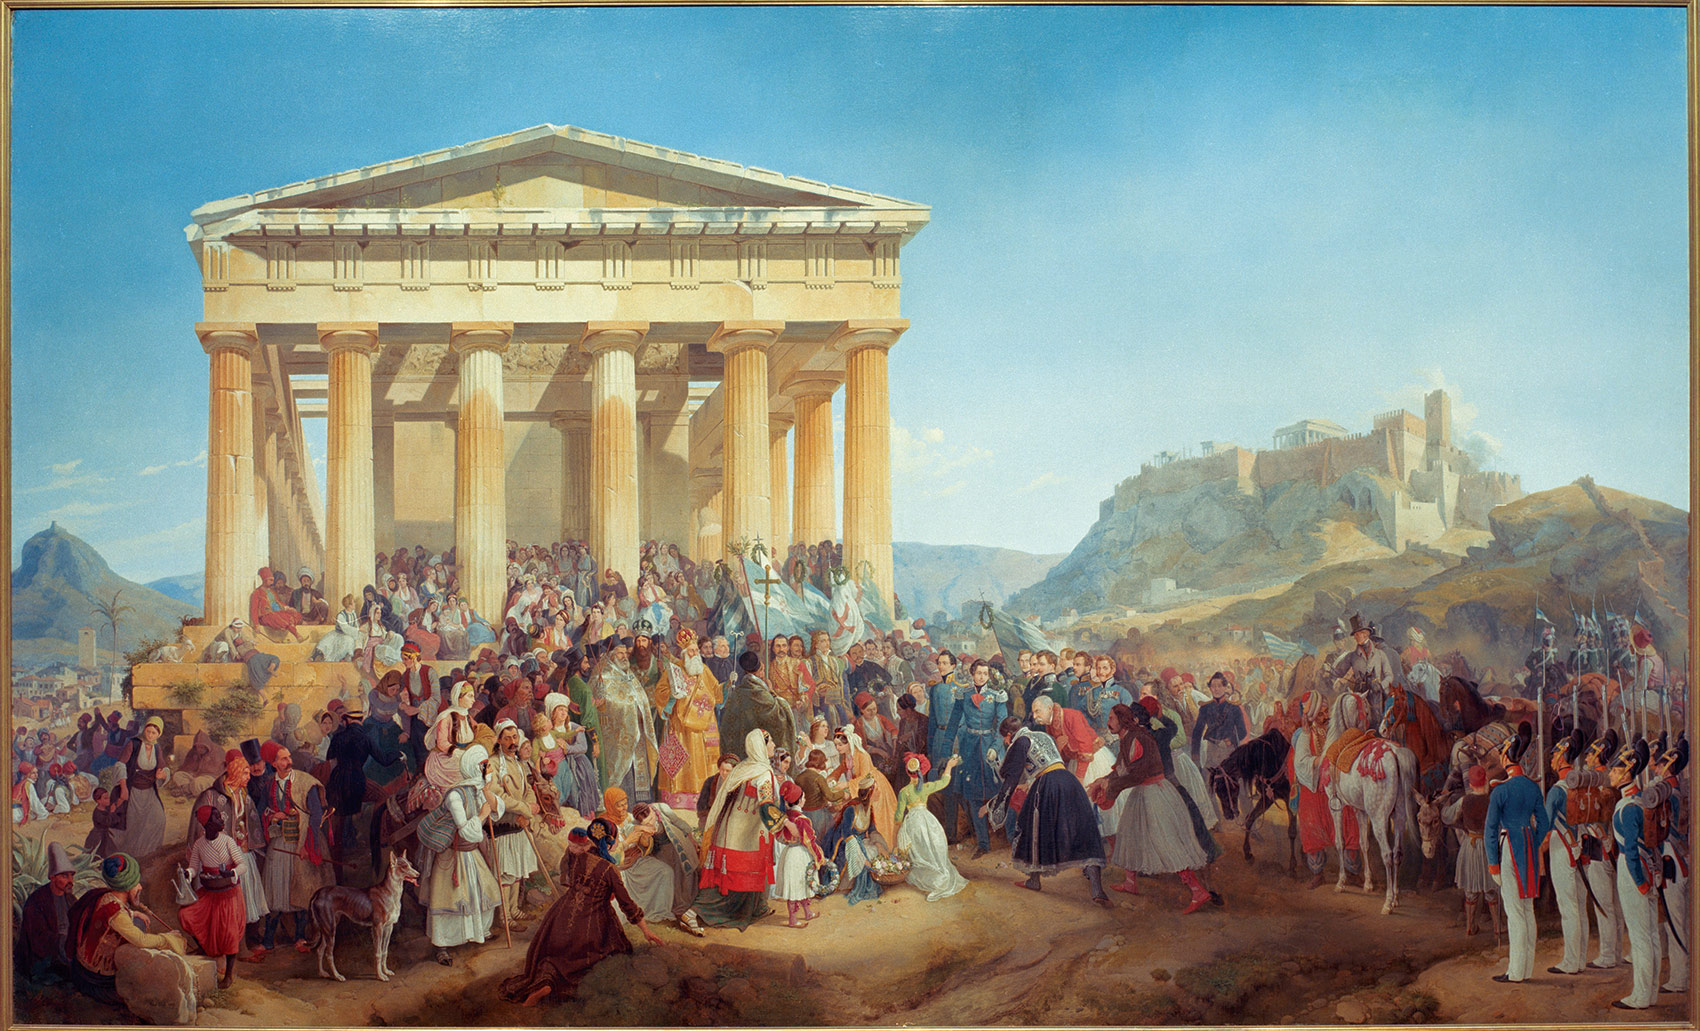 Reception of King Otto of Greece in Athens, 23 May 1833, by Peter von Hess, 1839